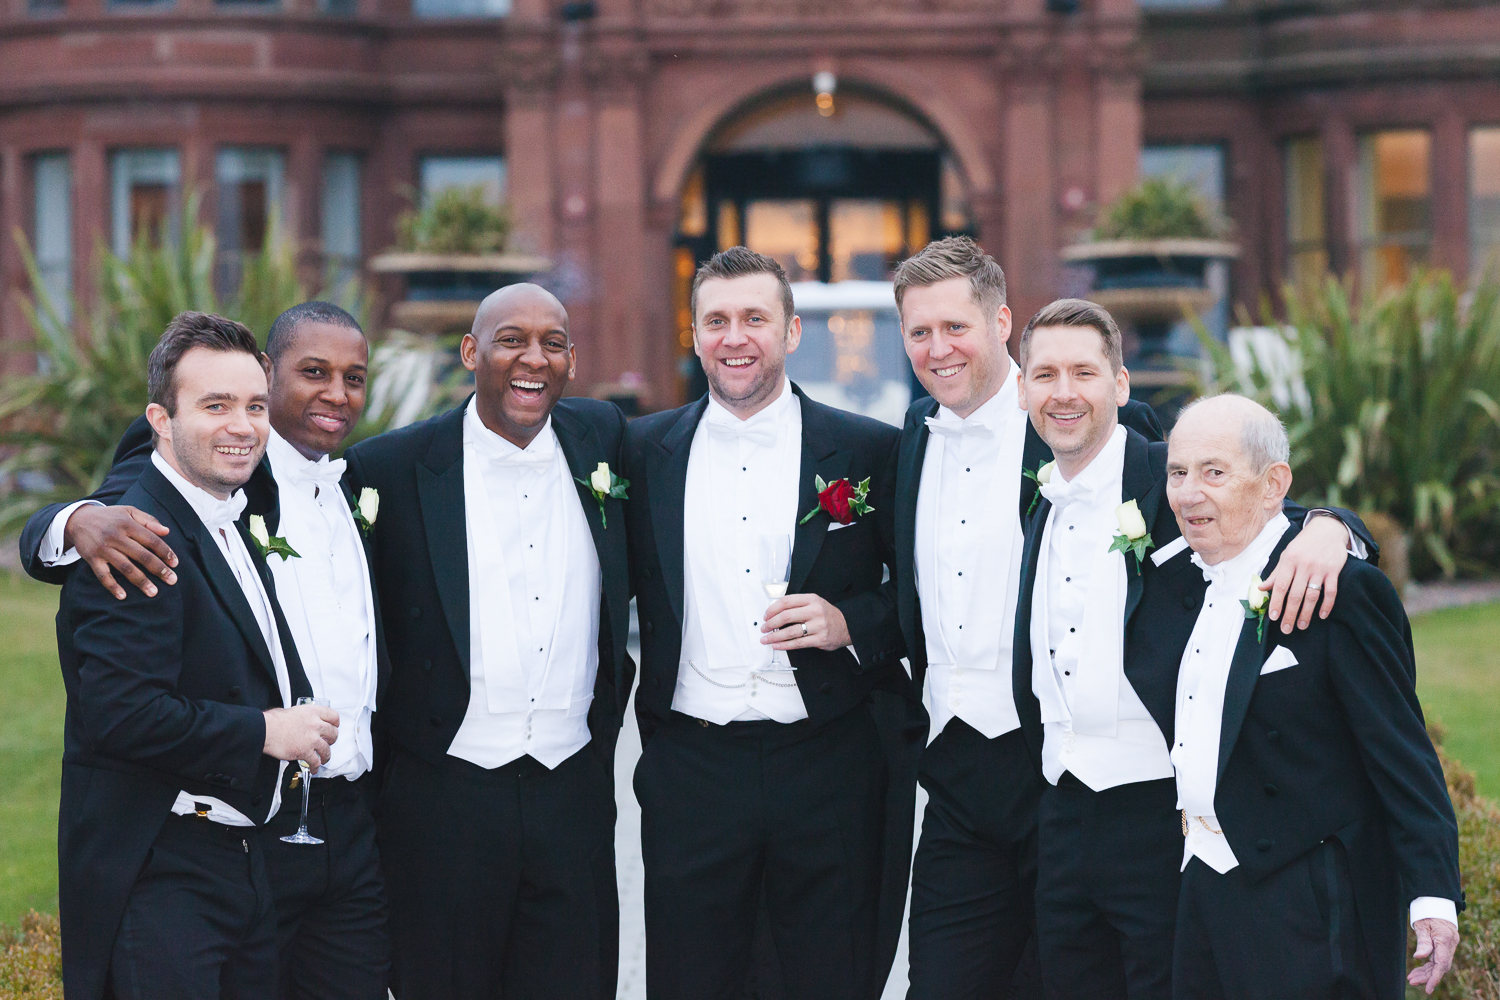 Slieve Donard Wedding Groomsmen